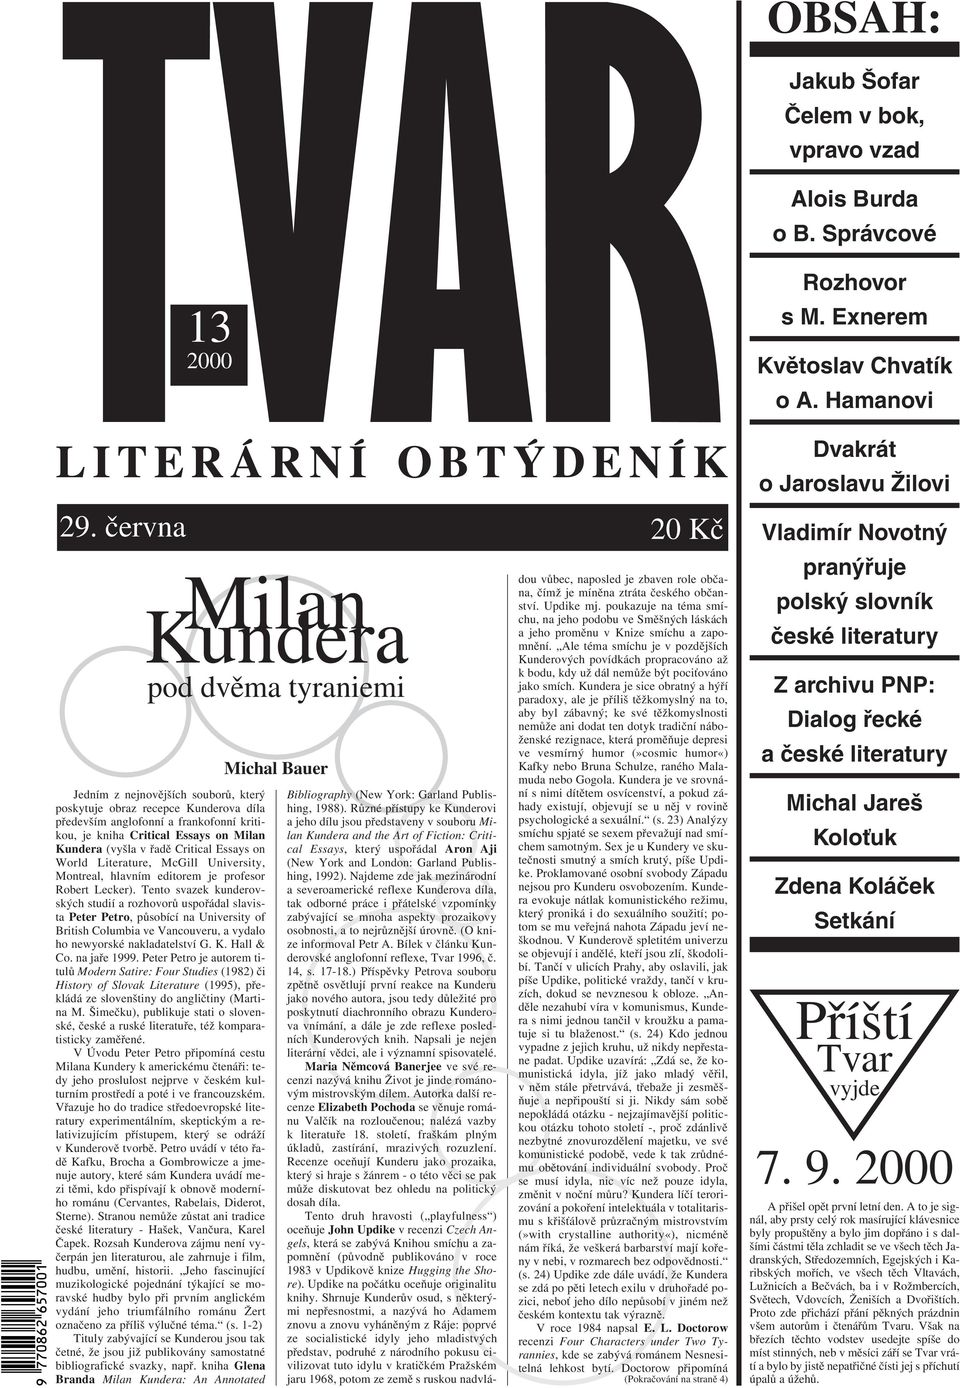 Milan Kundera (vyšla v řadě Critical Essays on World Literature, McGill University, Montreal, hlavním editorem je profesor Robert Lecker).